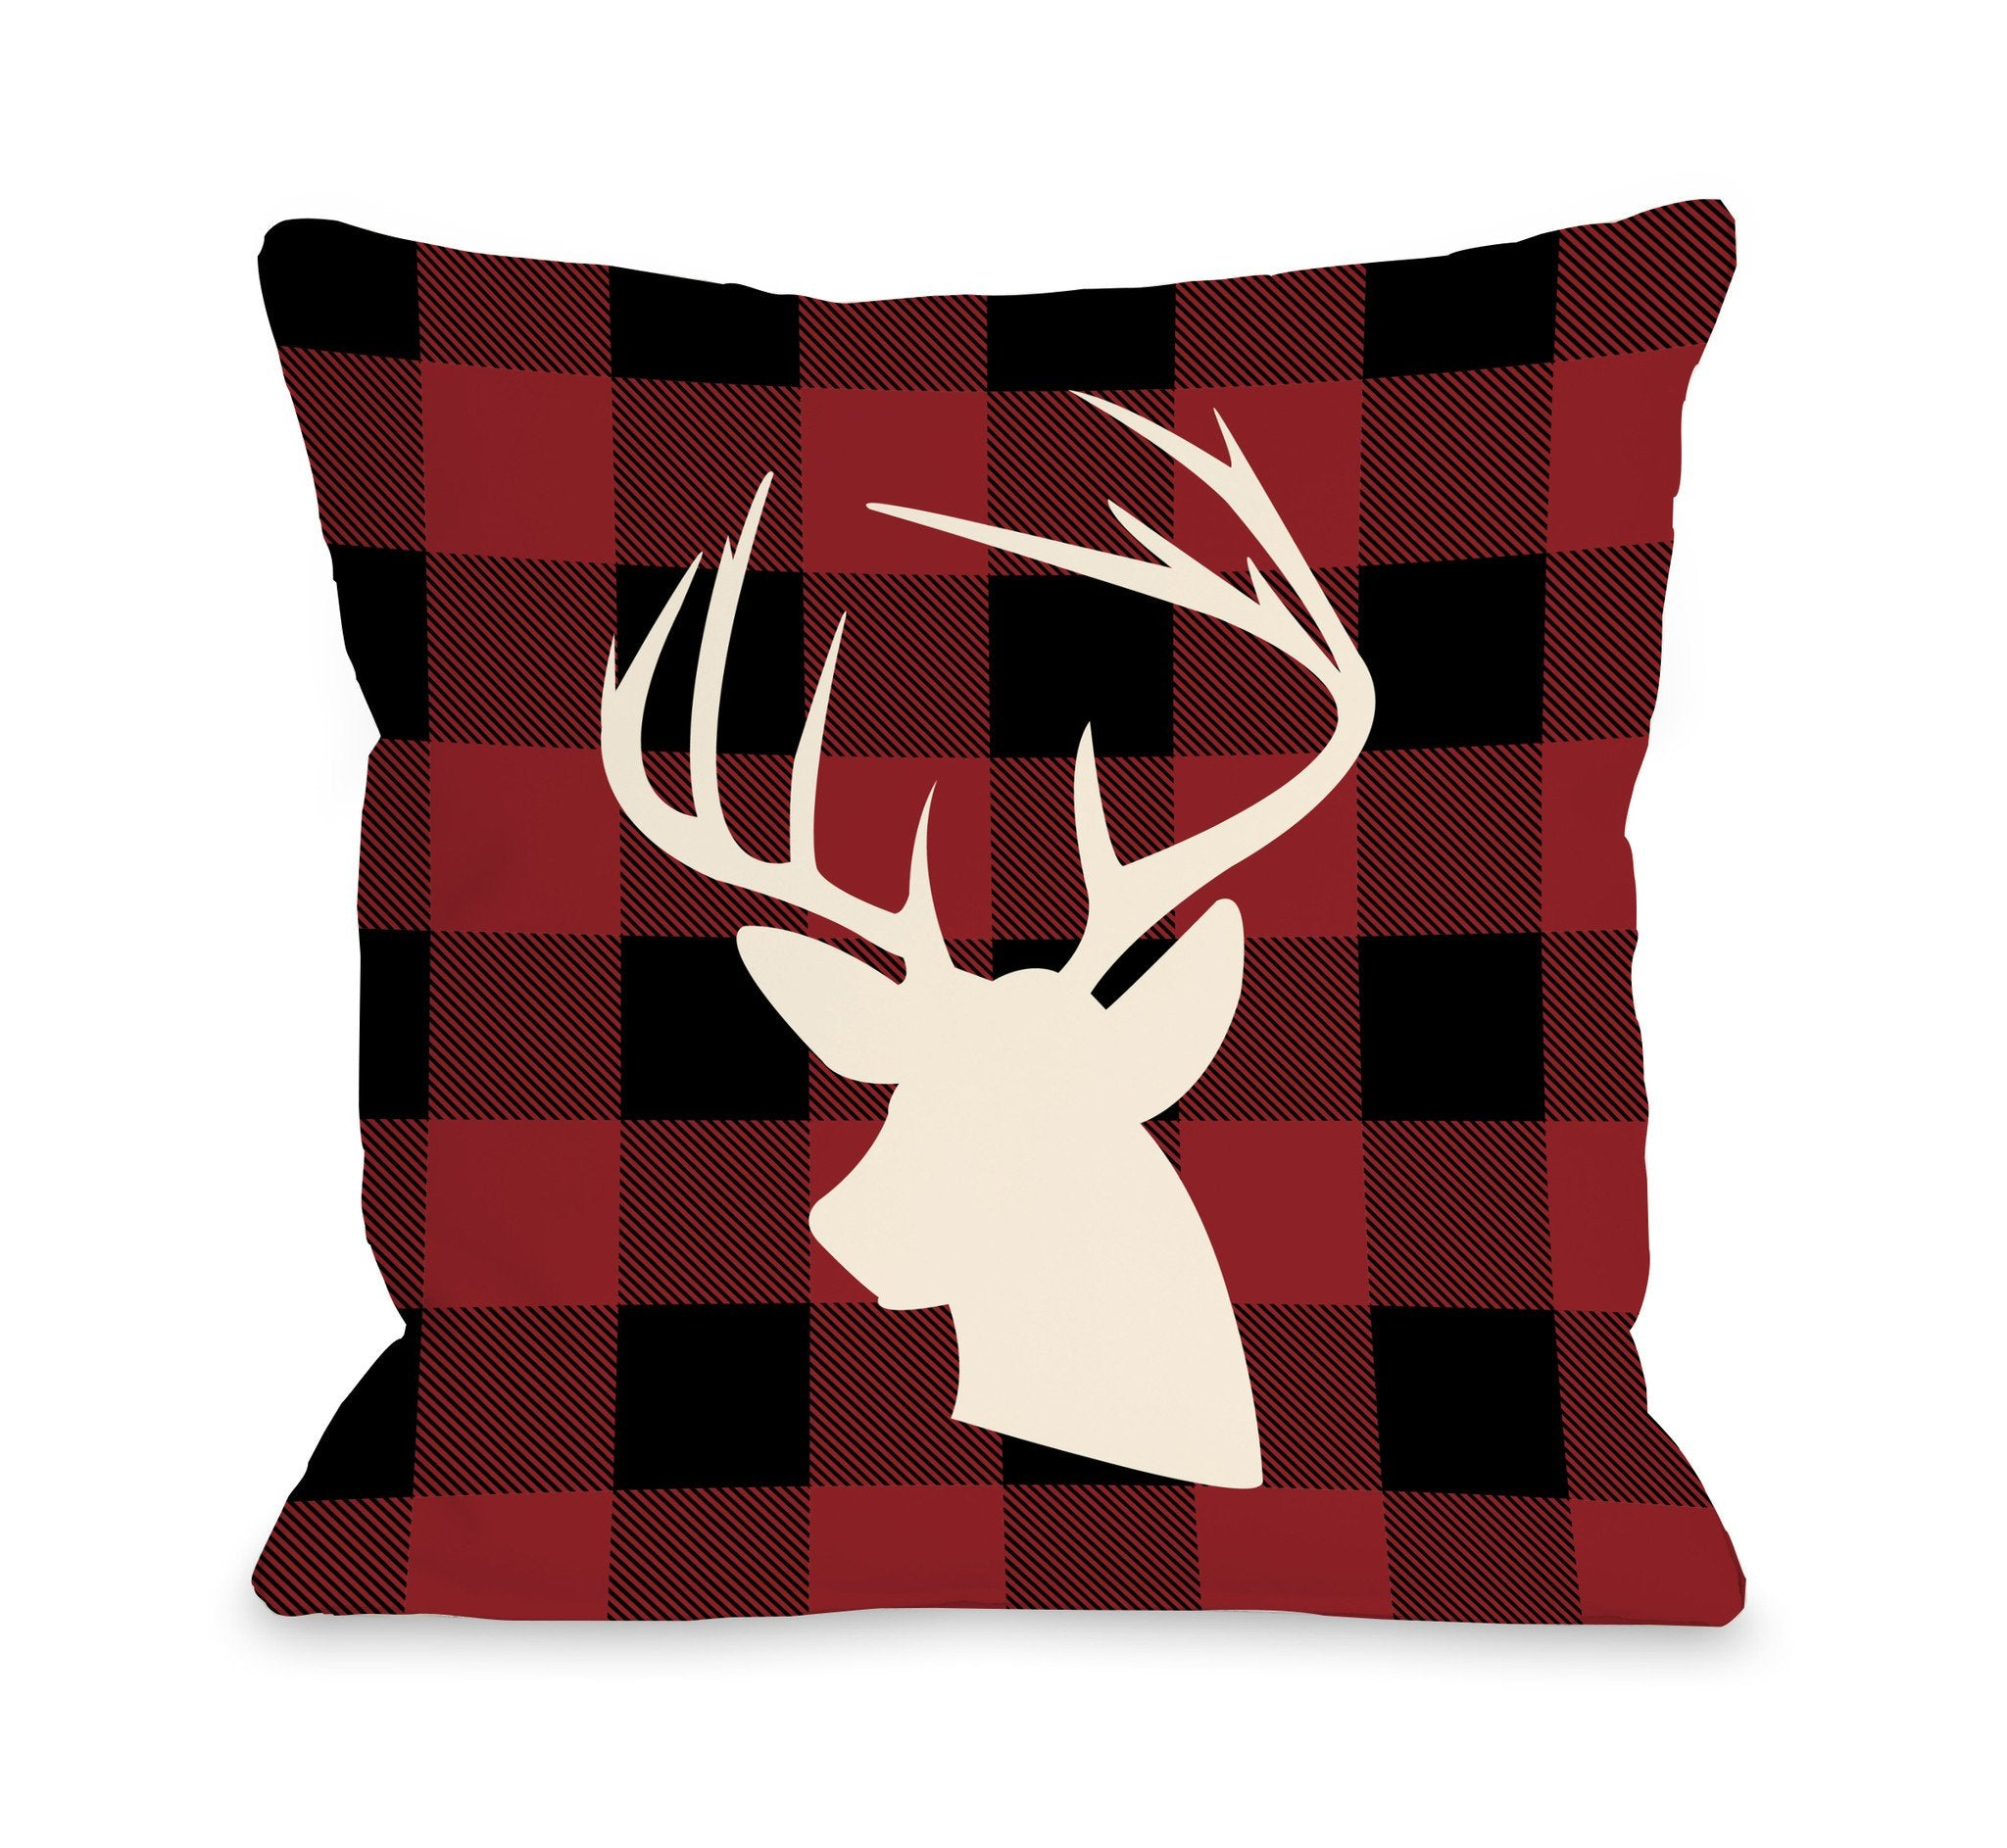 home plaid pillow premier fall deer products gifts pillows comet red throw decor